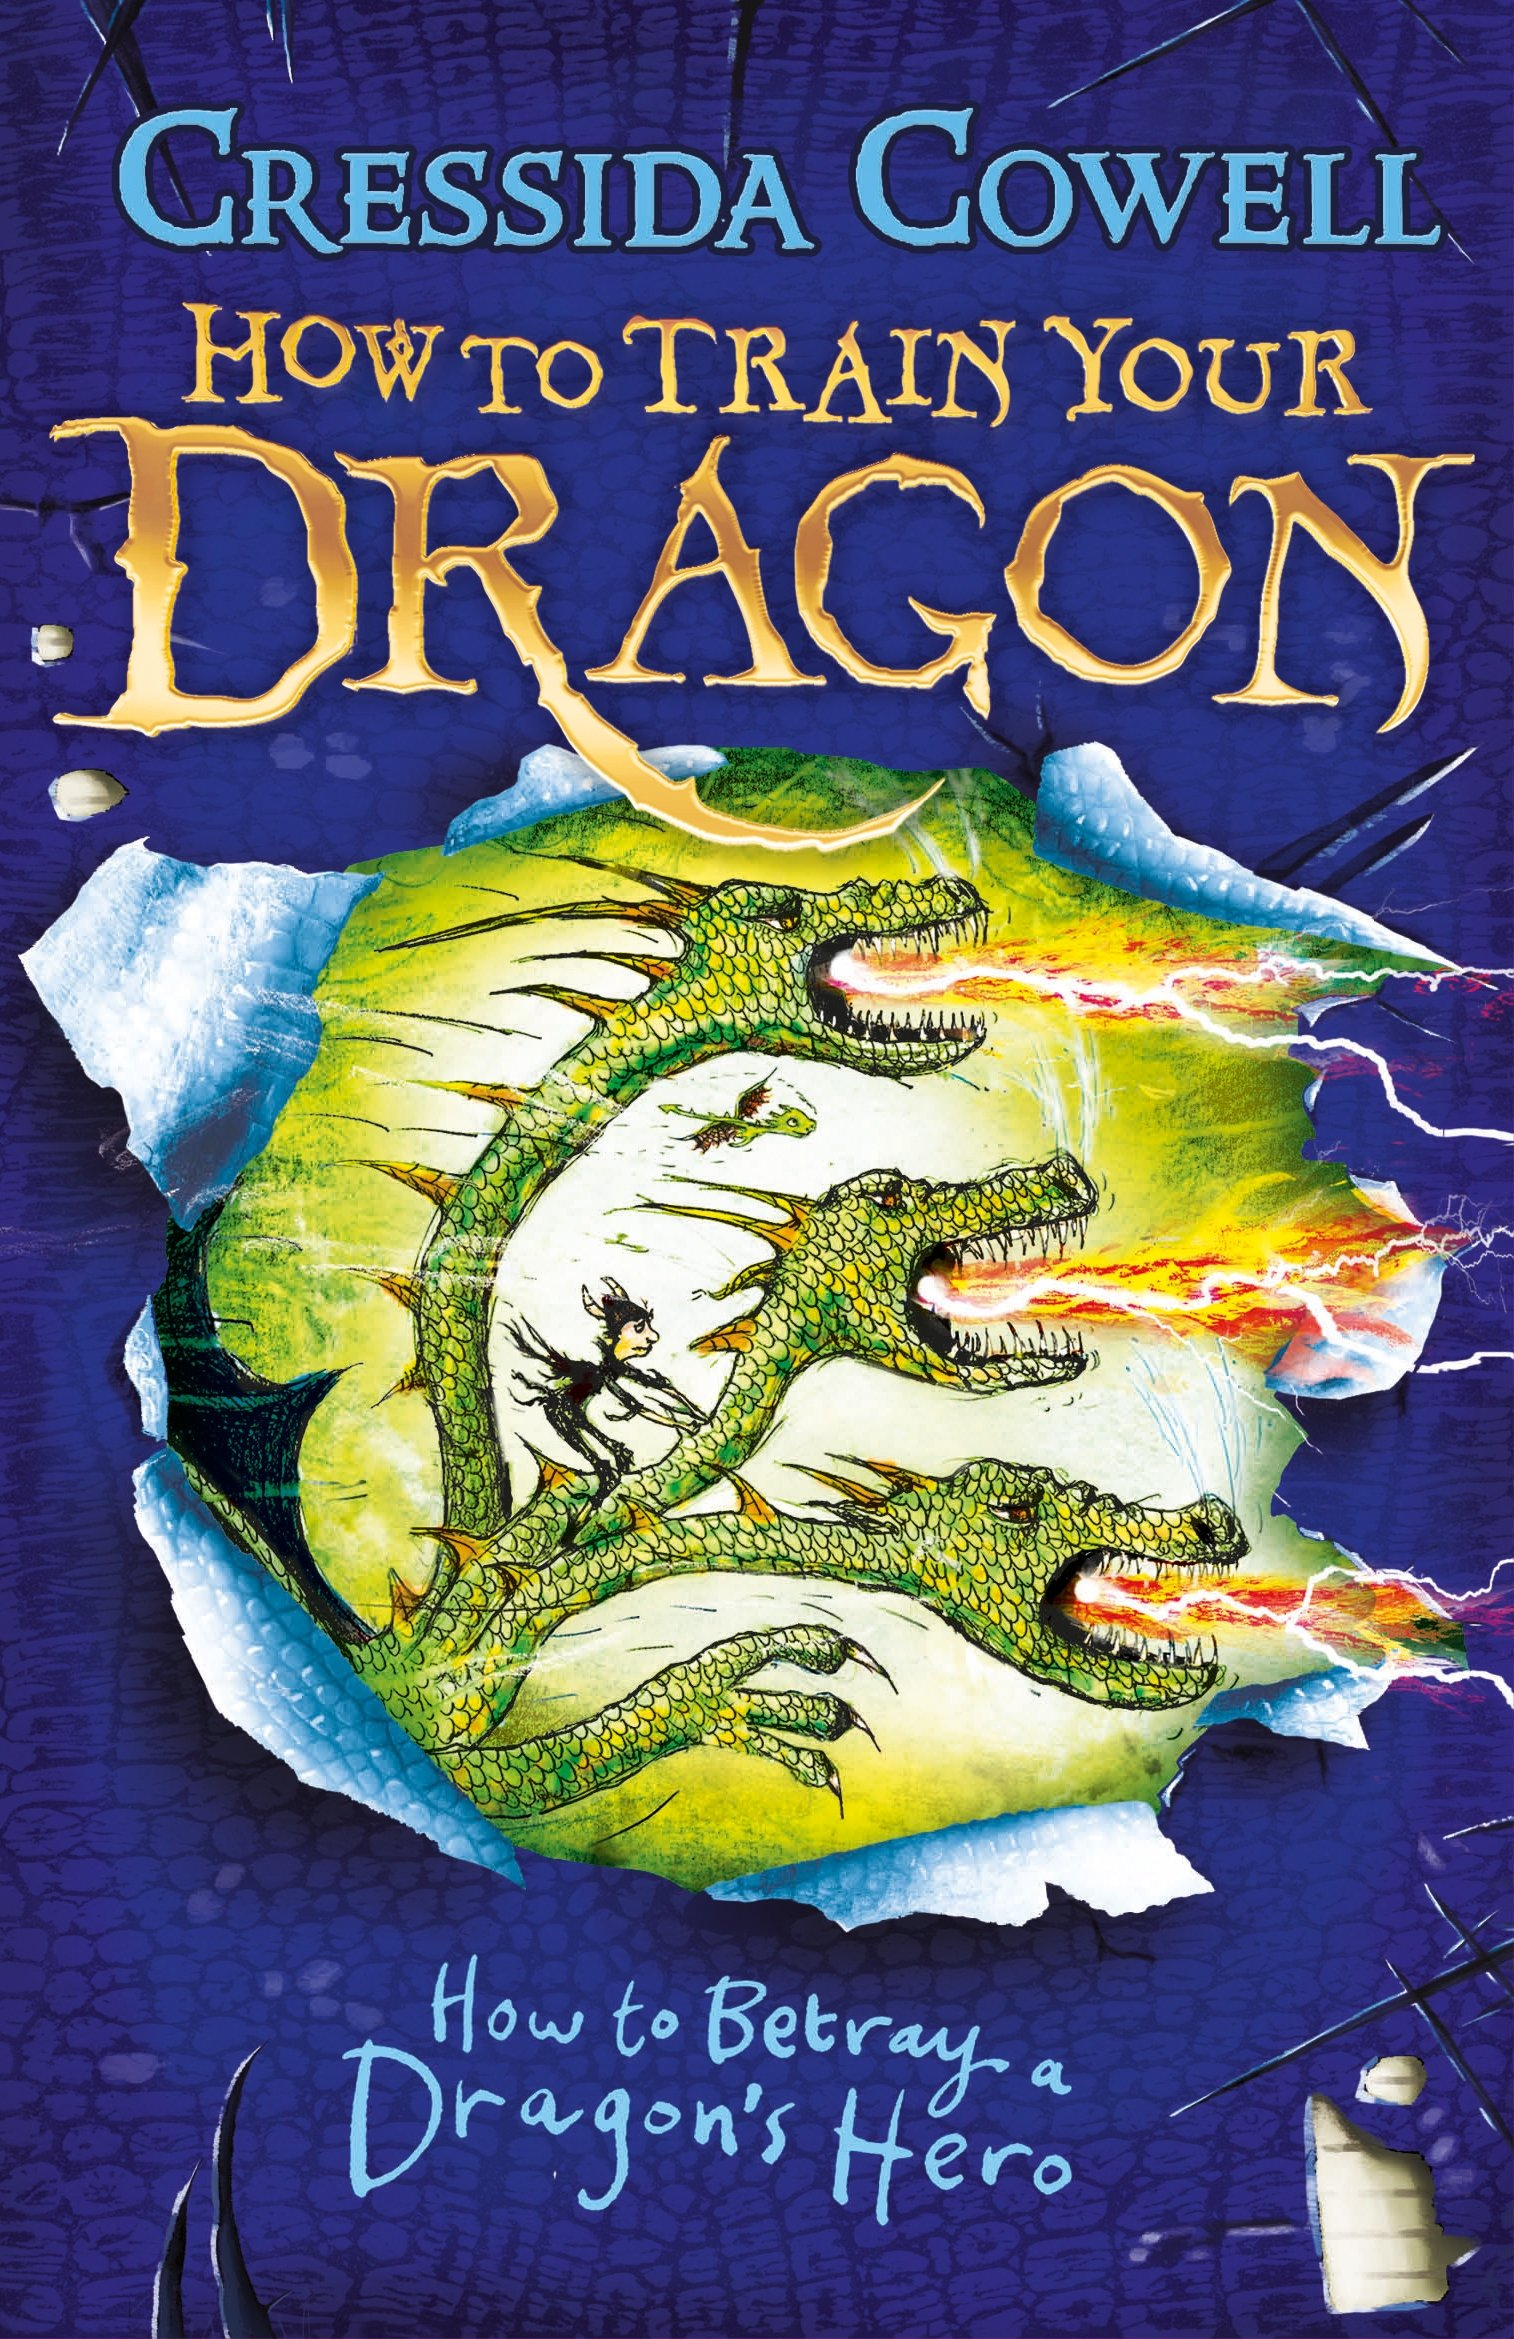 how-to-train-your-dragon-how-to-betray-a-dragon-s-hero-book-11